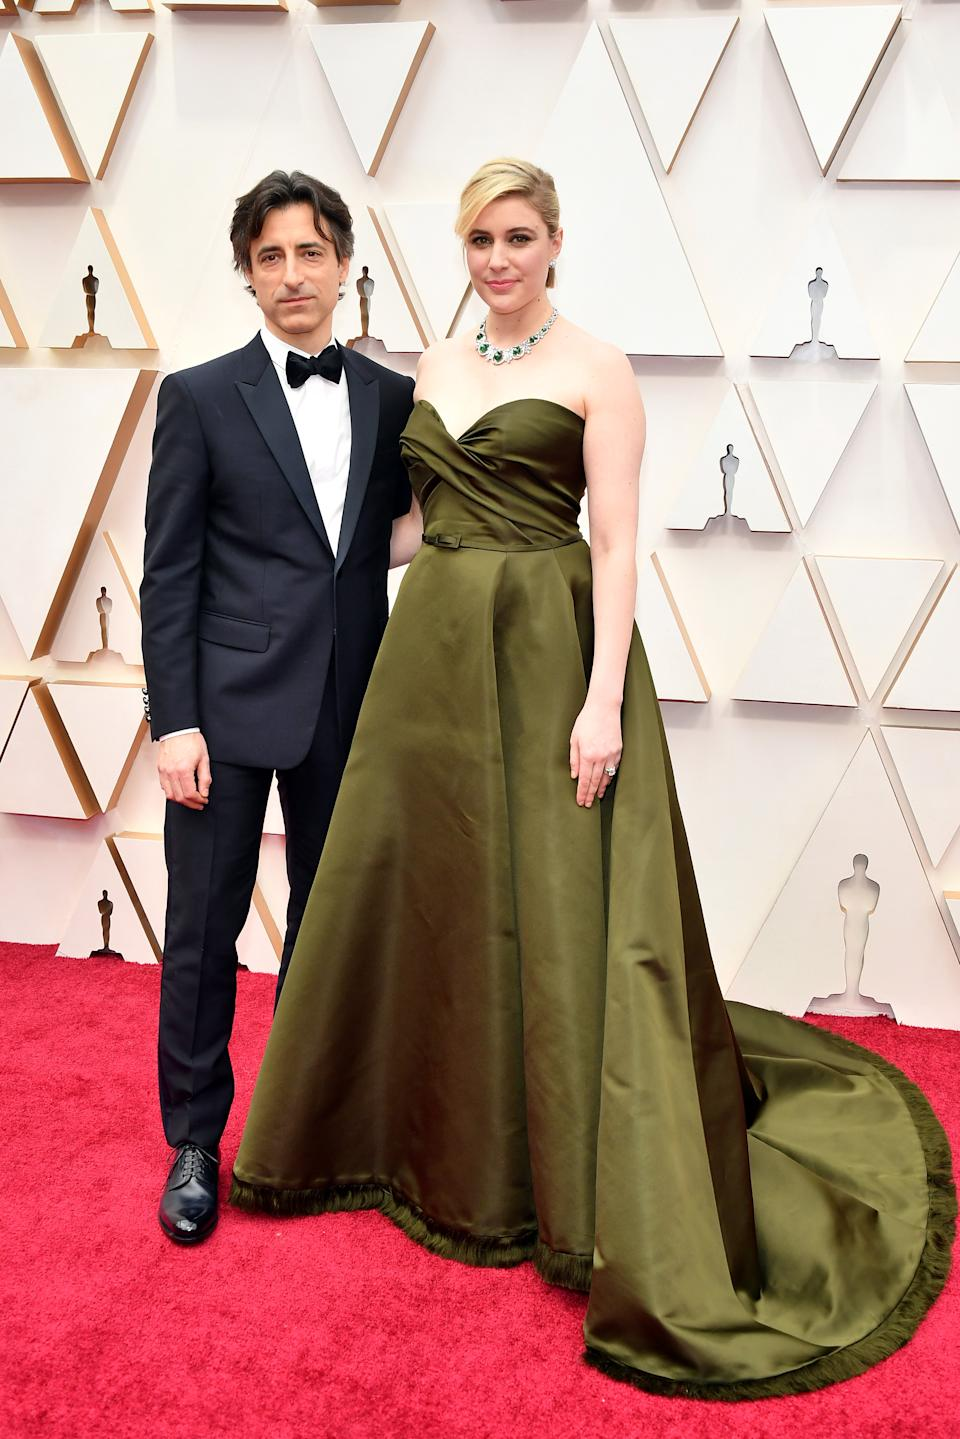 """A big night for the Baumbach-Gerwig household! Baumbach is up for two awards including Best Director for his film """"Marriage Story,"""" while Gerwig (wearing Dior Haute Couture) is nominated for Best Adapted Screenplay for her film, """"Little Women."""""""